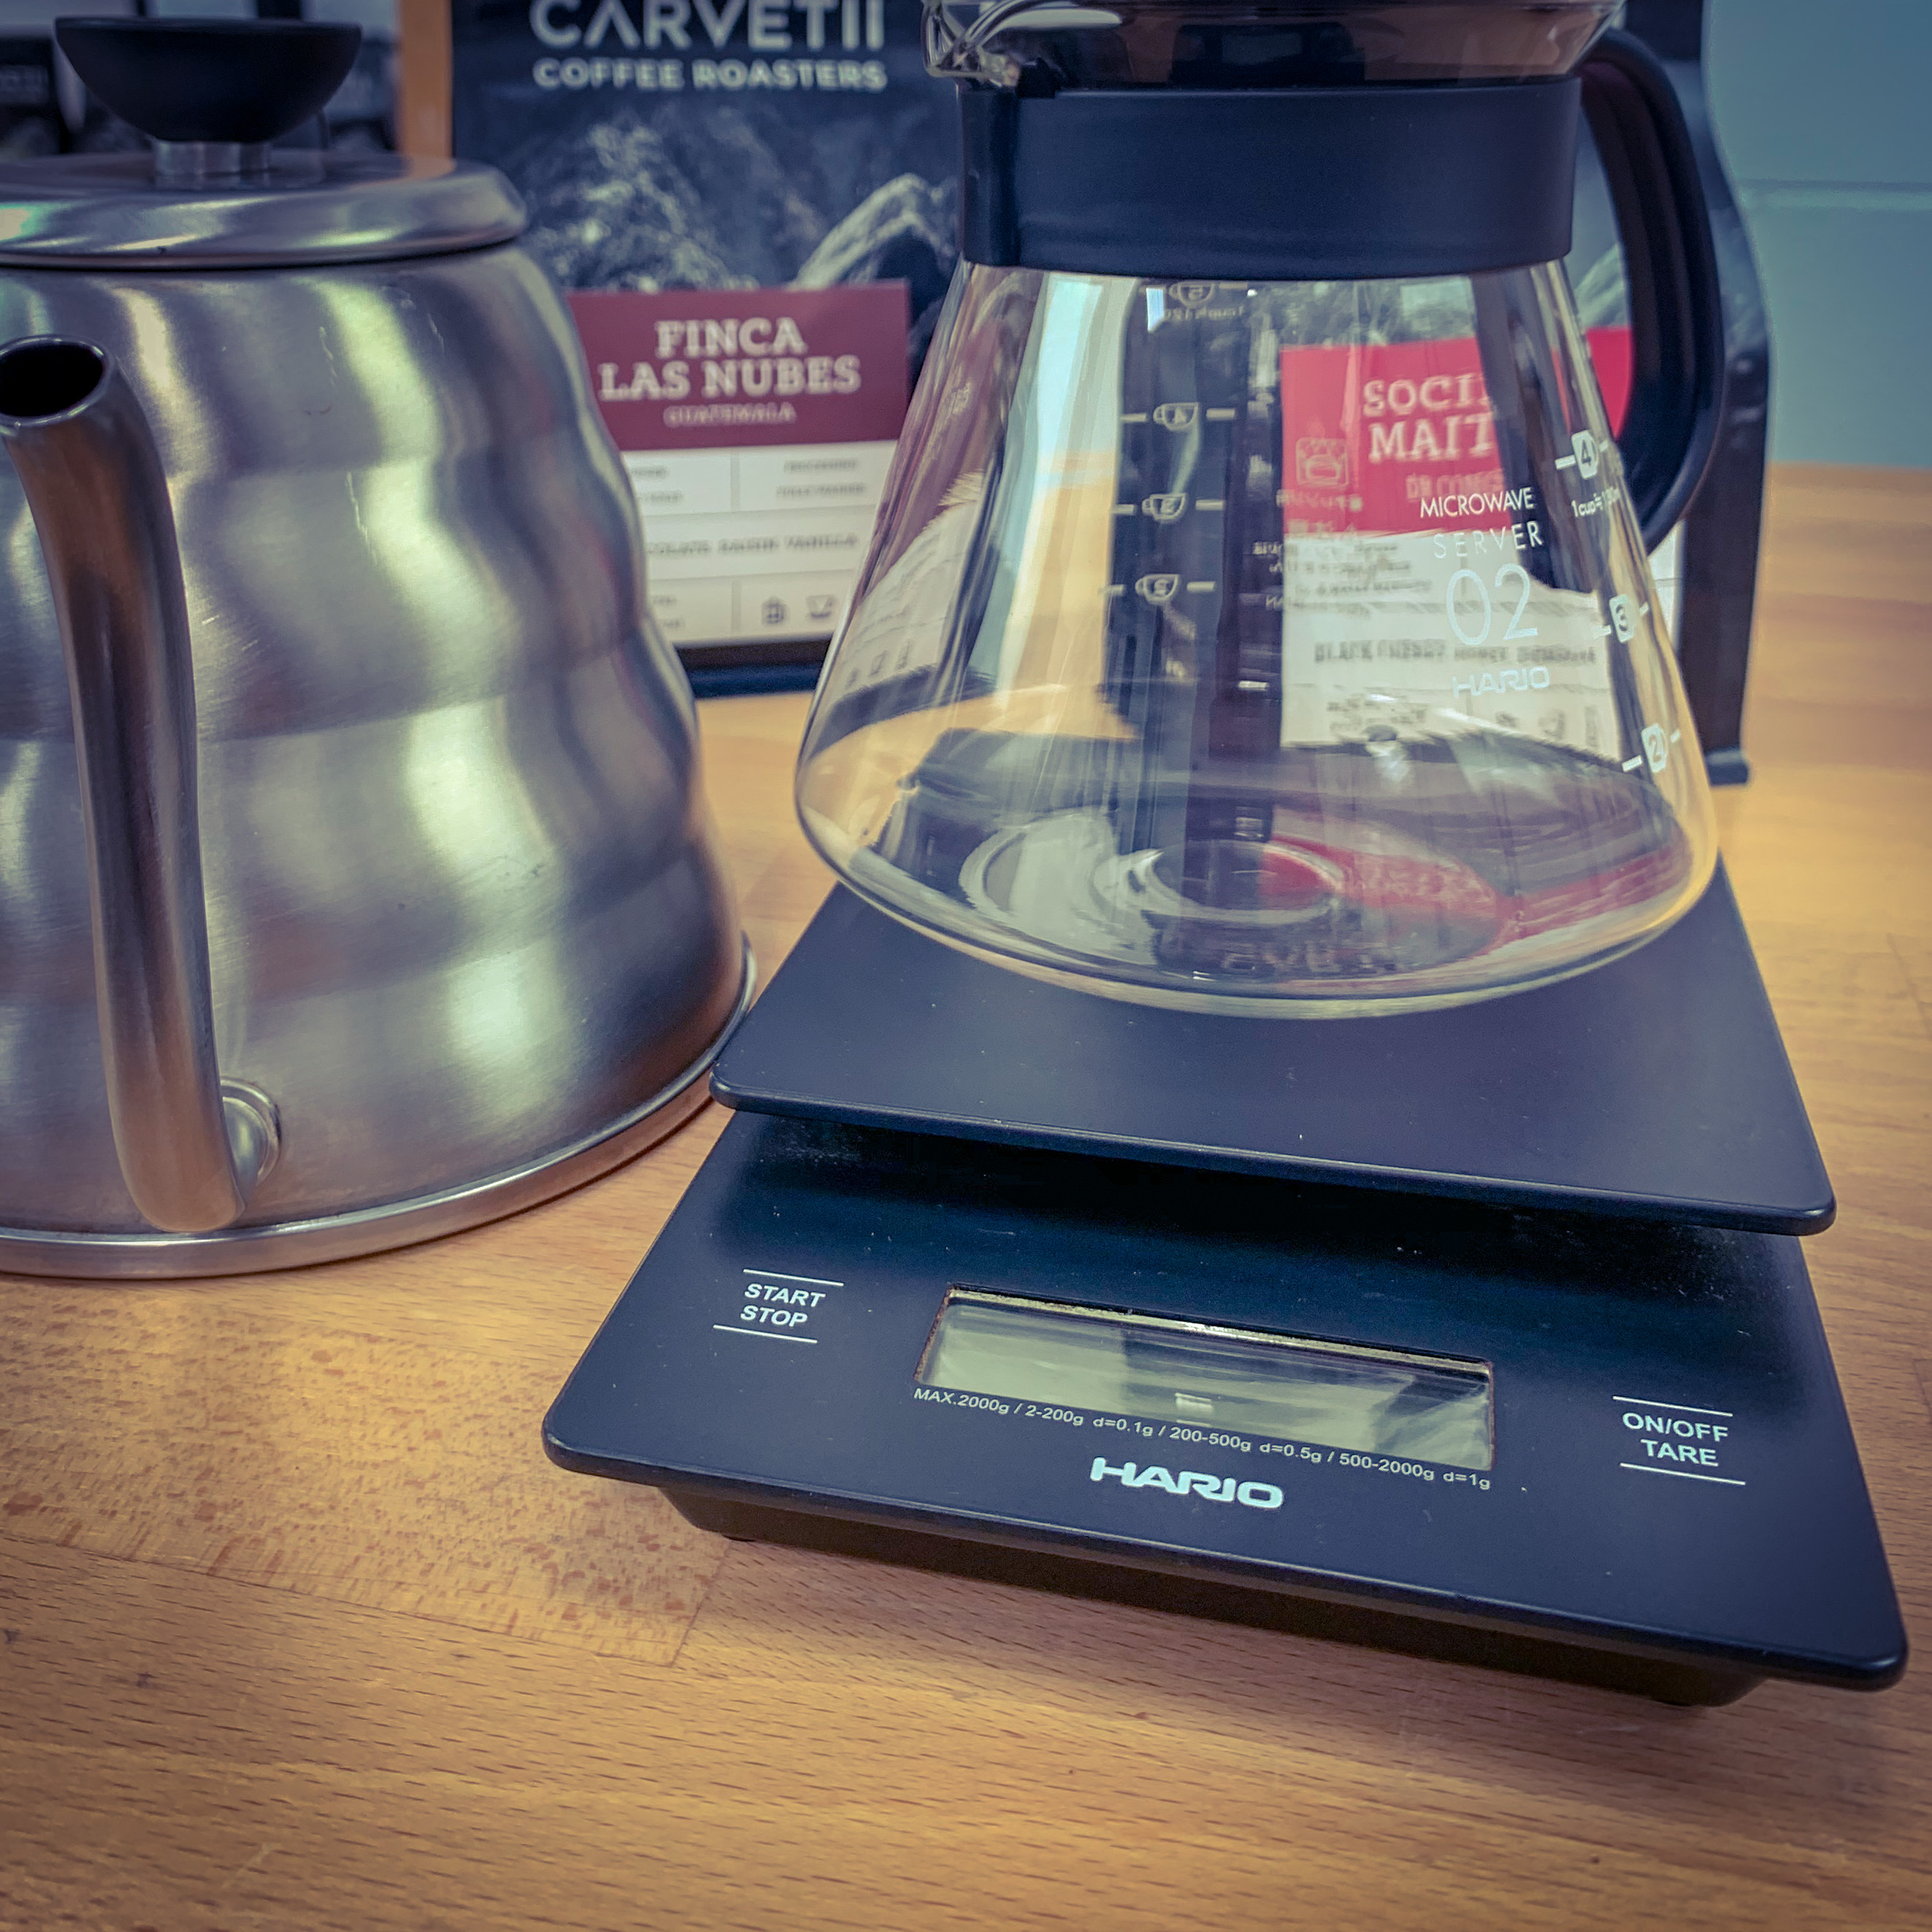 Coffee Brewing Scales via @carvetiicoffee